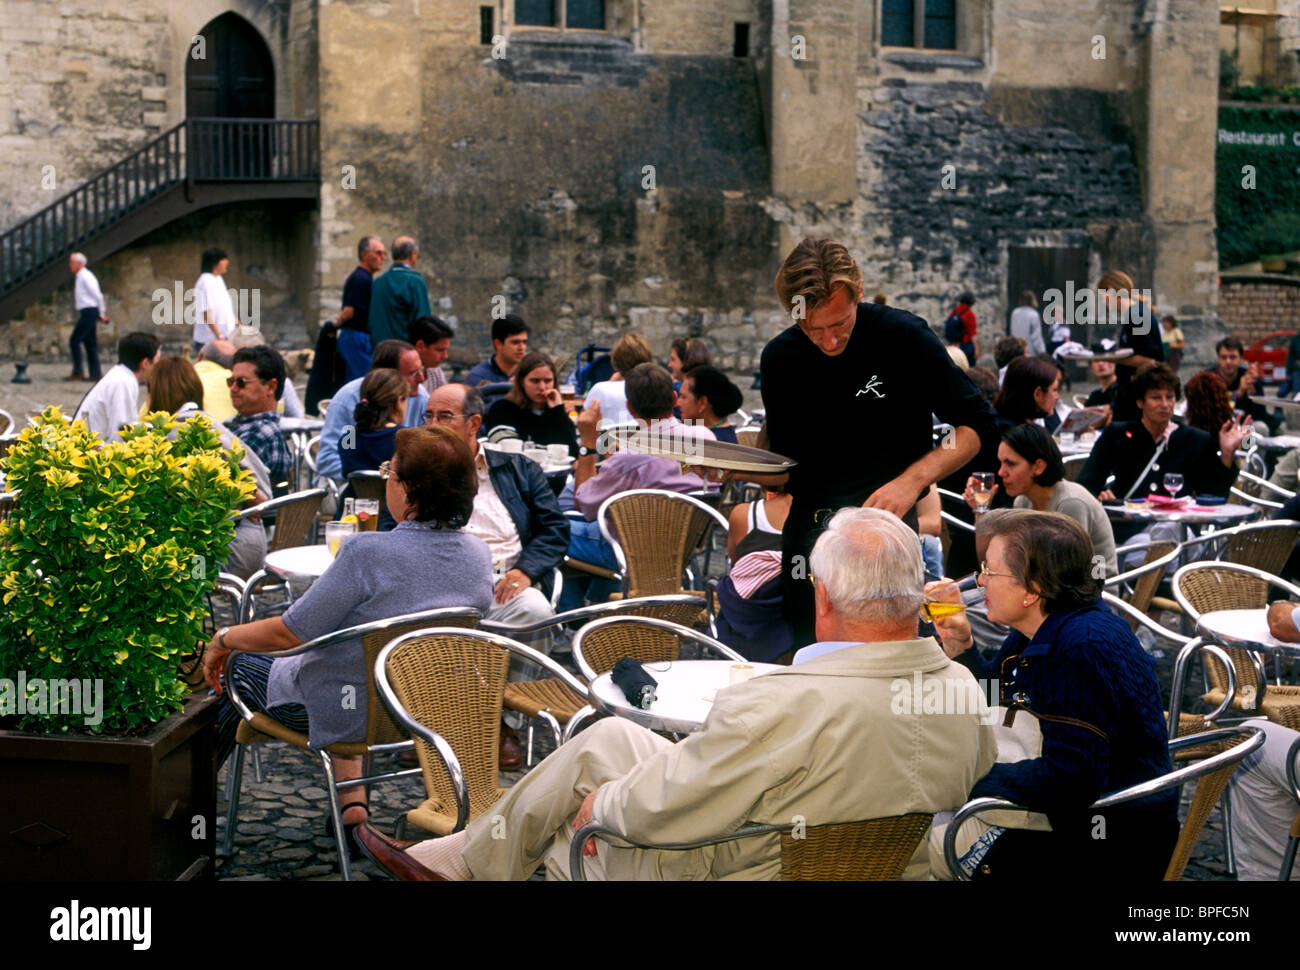 French People Eating Dining Restaurant Food And Drink Place Du Palais City Of Avignon Provence France